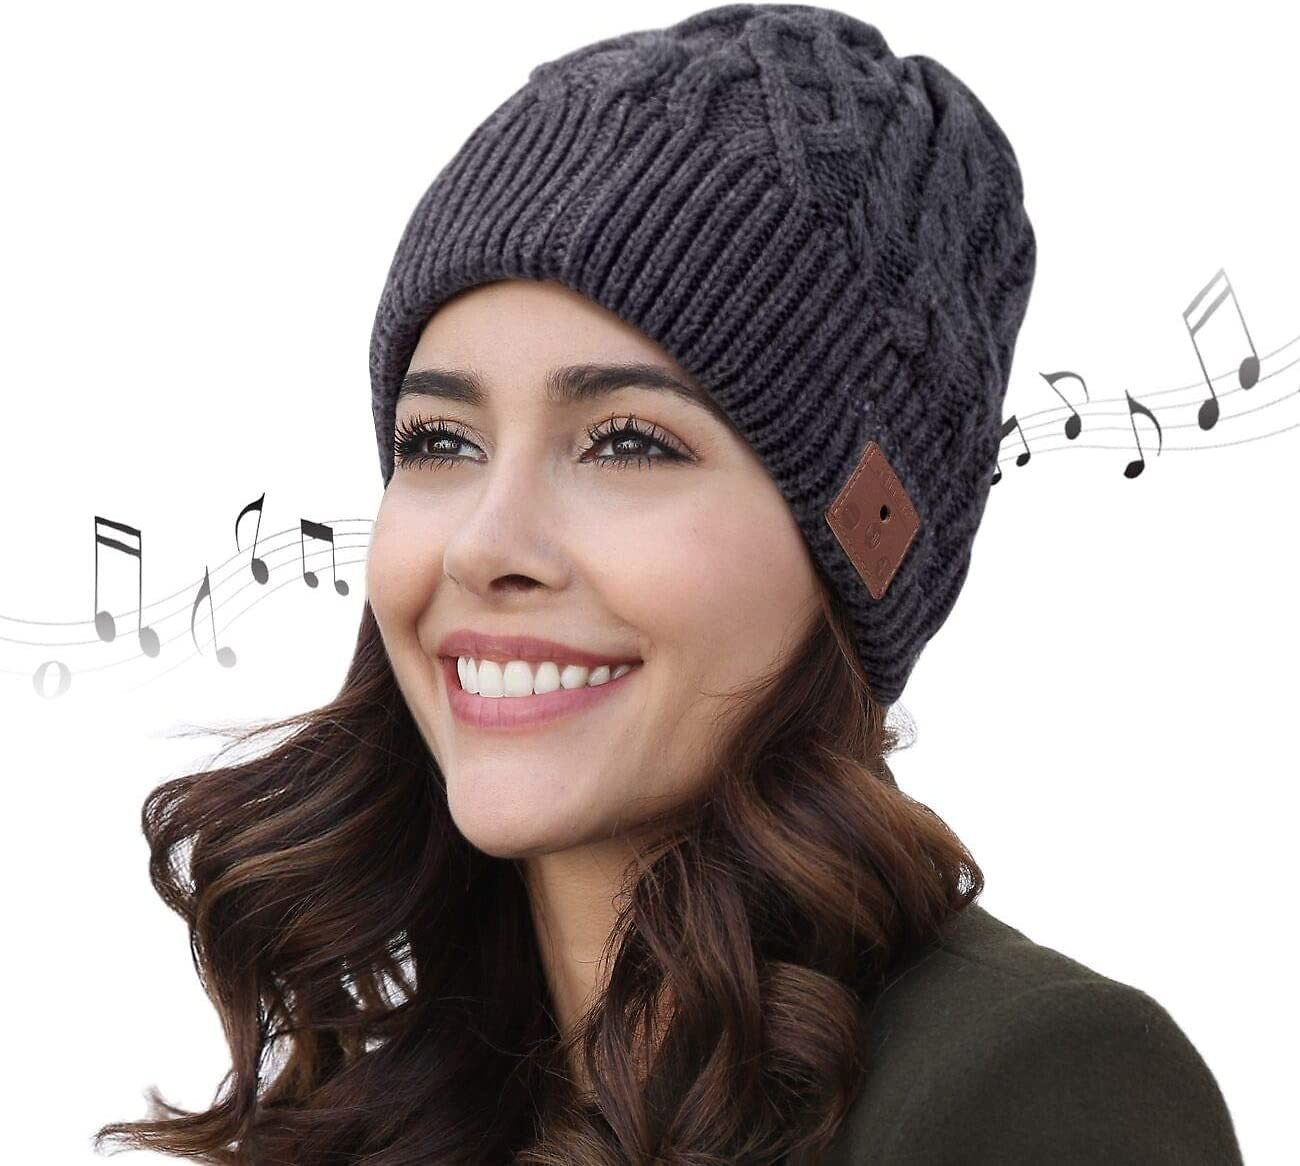 BULYPAZY Bluetooth Beanie Upgraded Version 5.0, Bluetooth Hat for Men with Double Fleece Lined, Mic and HD Speakers, Unique Gift